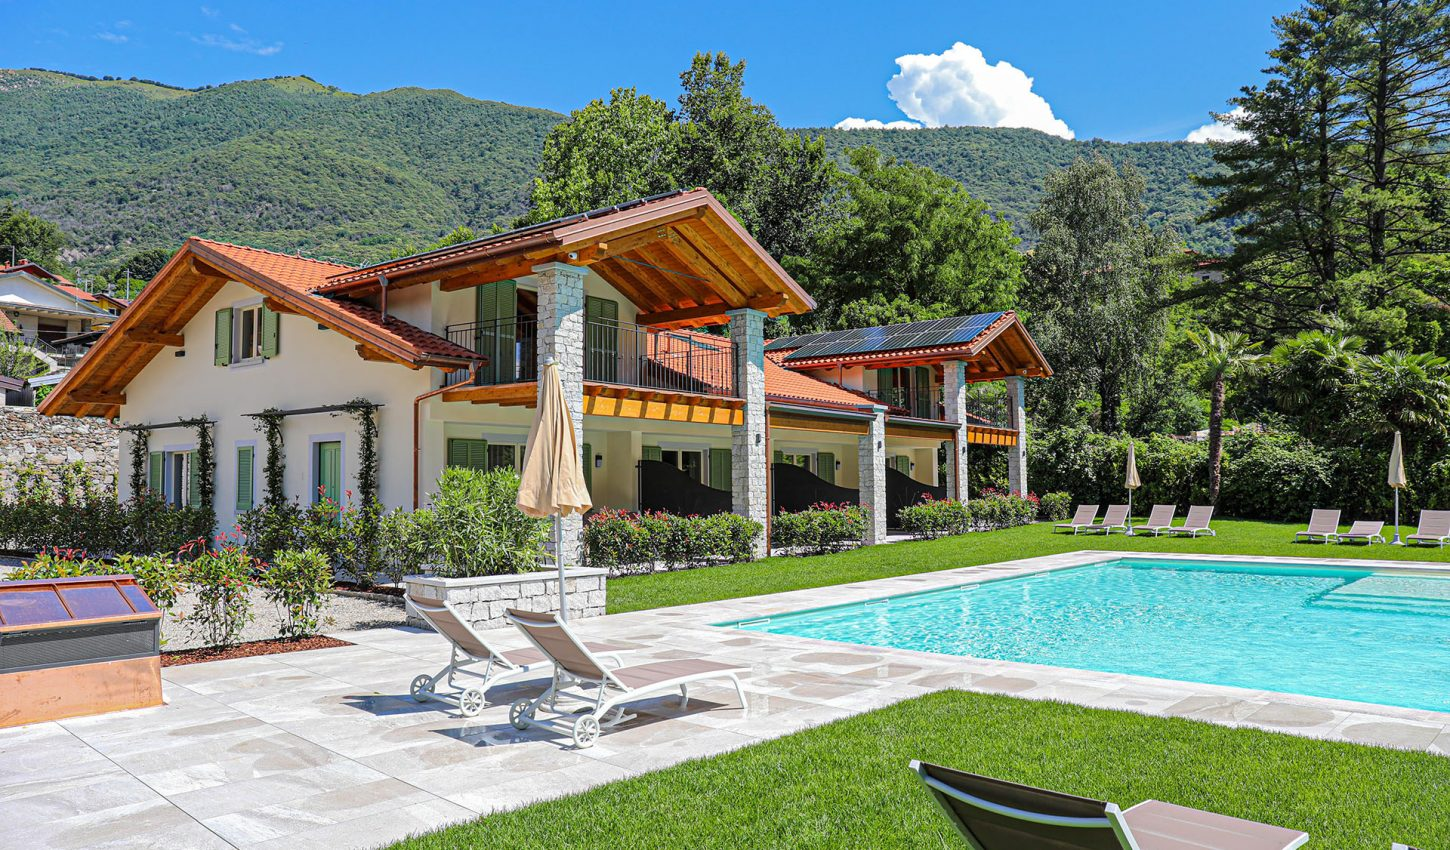 piscine verbano - home and pool (2)